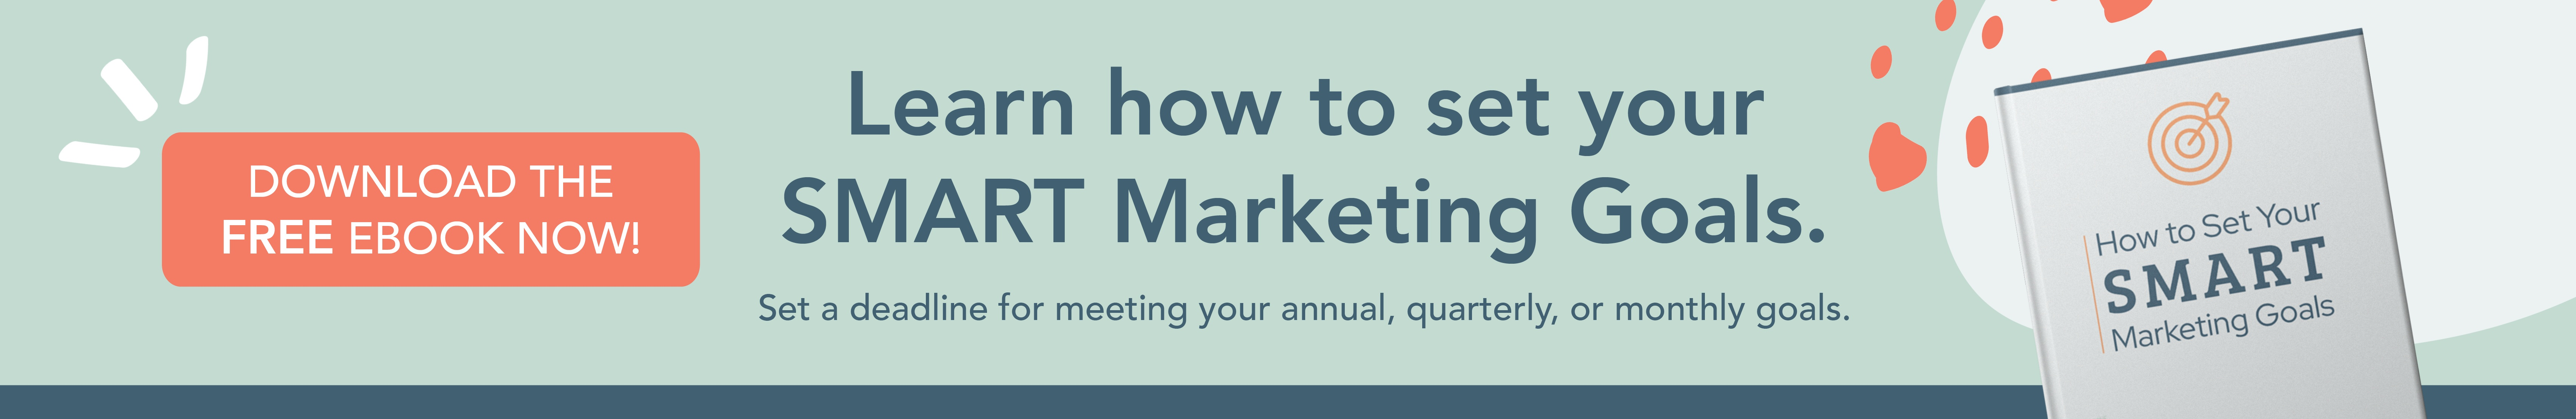 How to Set Your SMART Marketing Goals